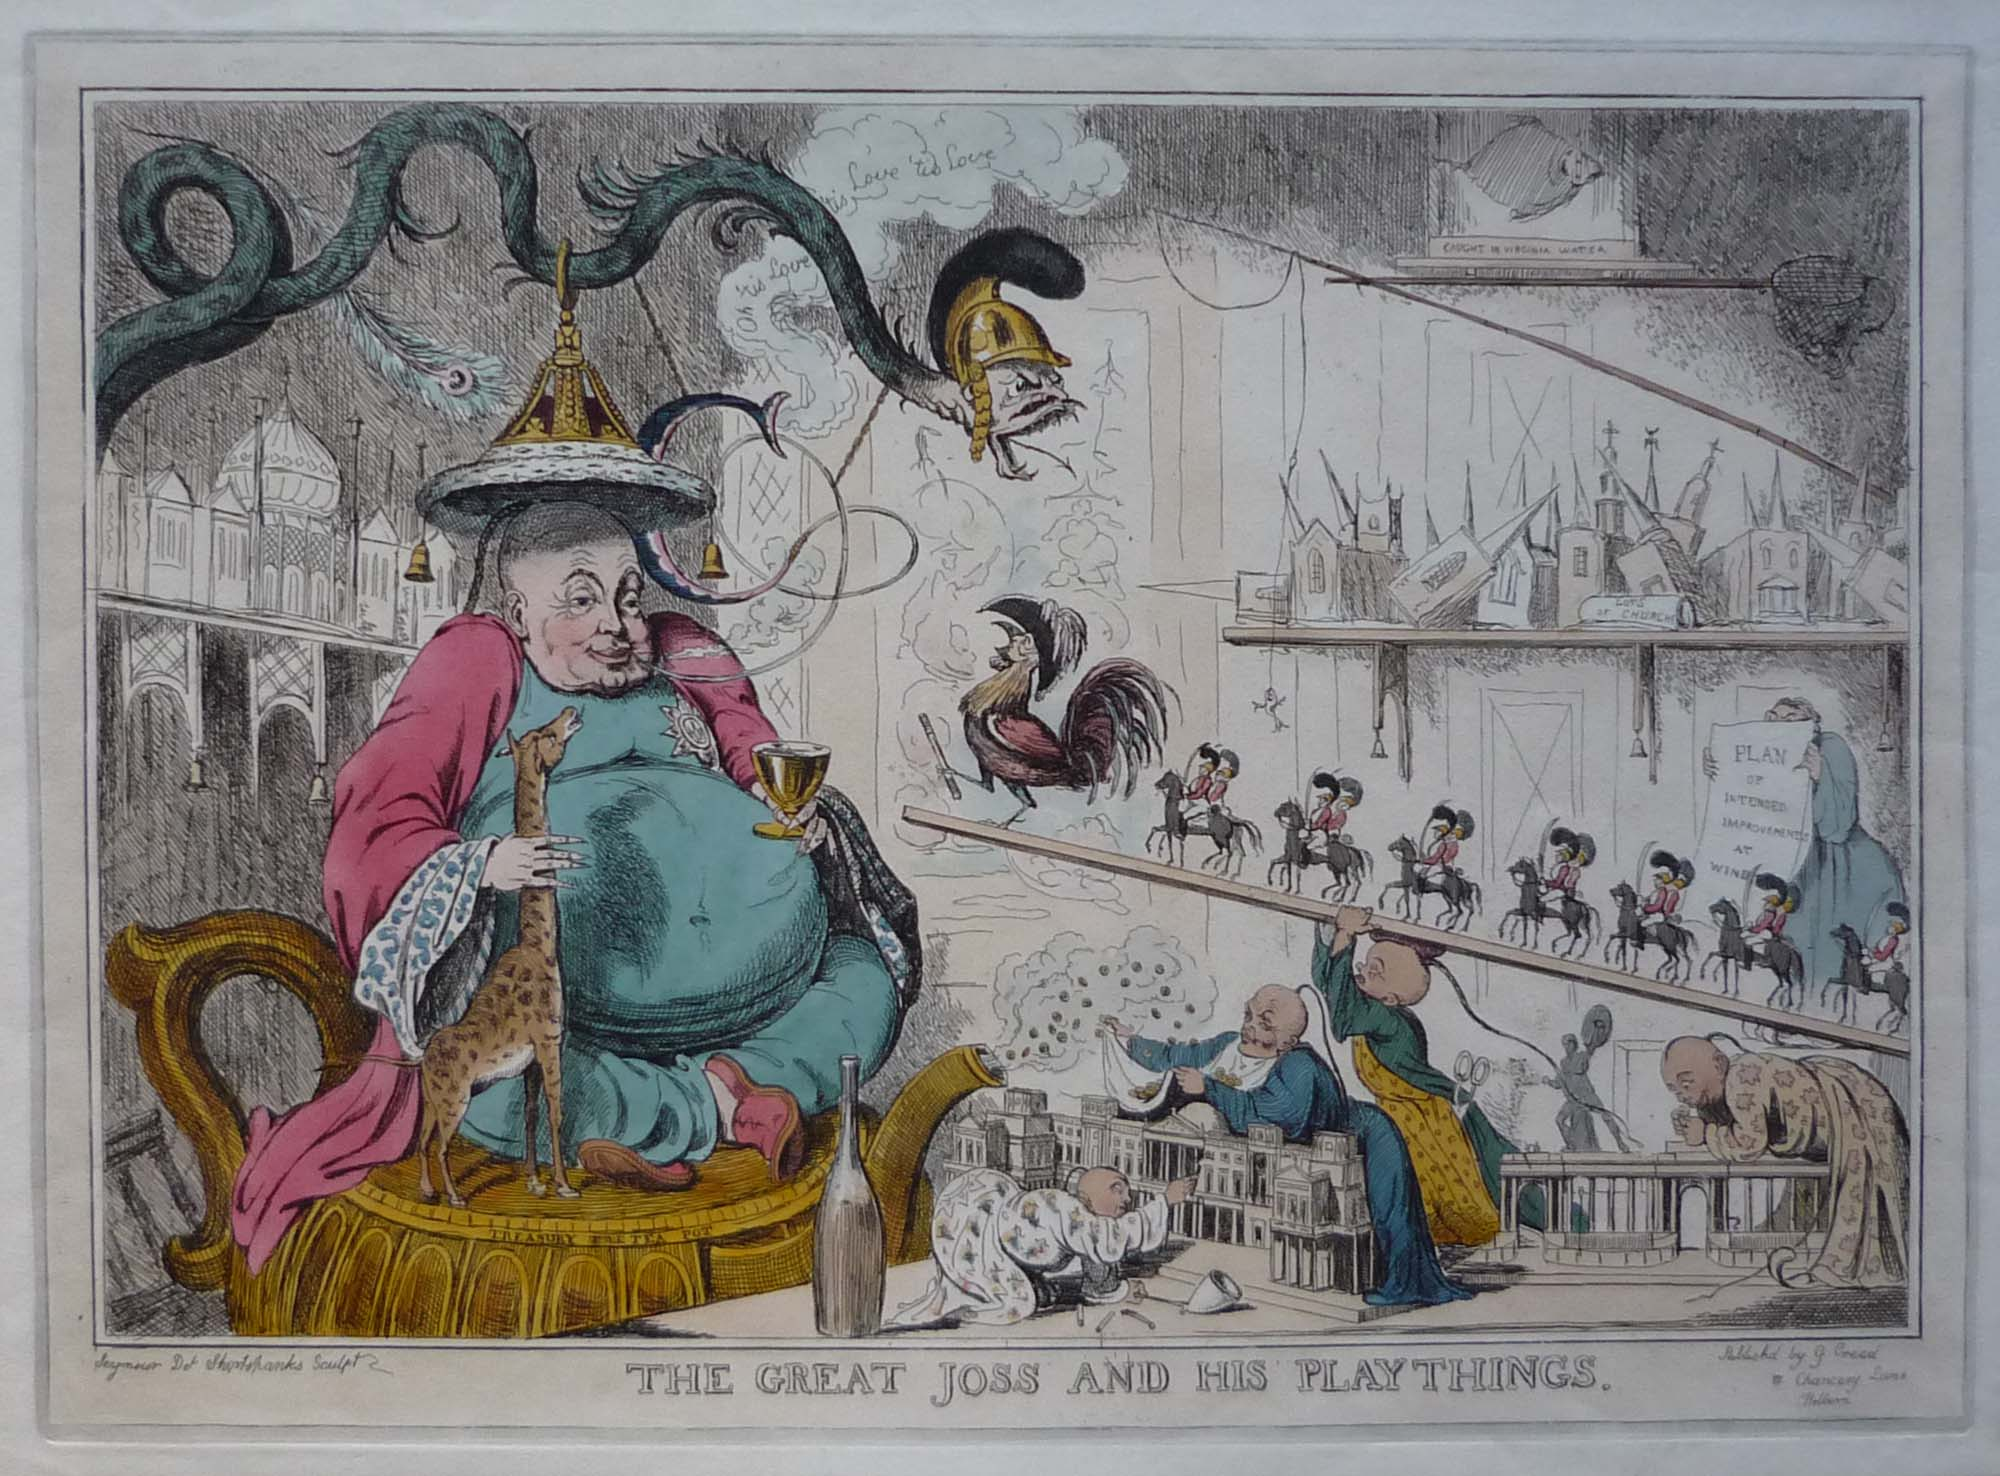 a caricature of a man seated on a cushion smoking an opium pipe